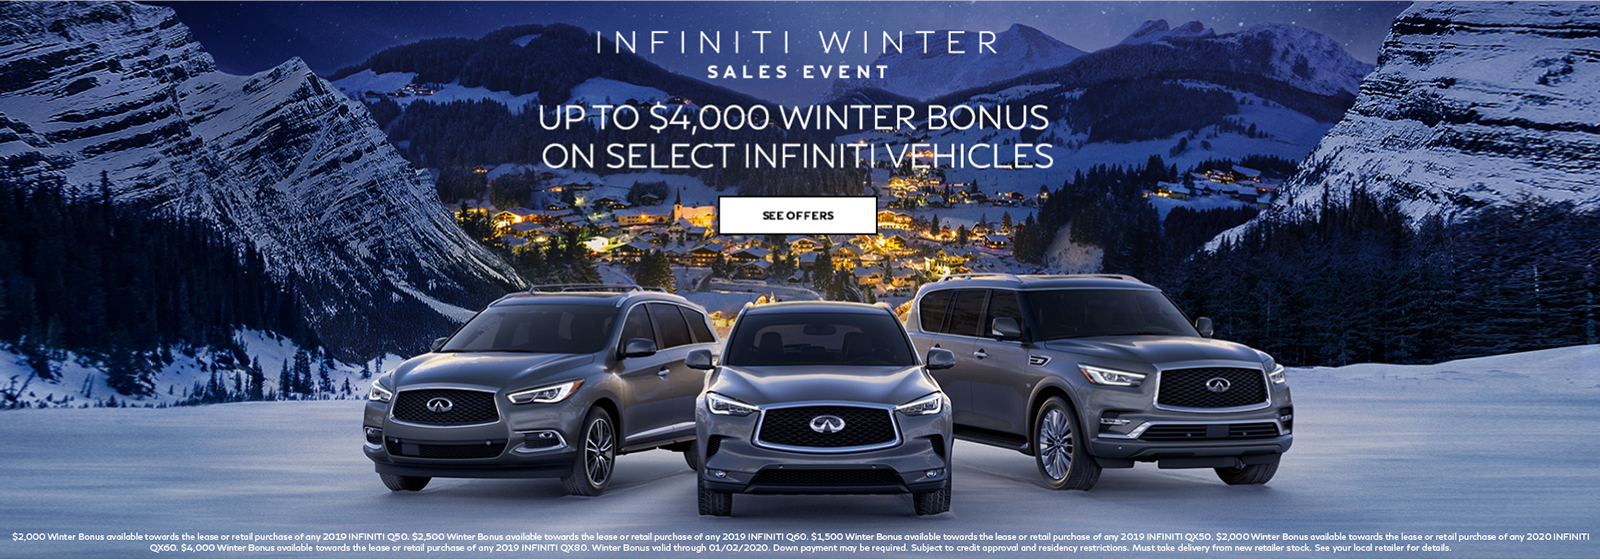 Winter Sales Event DI